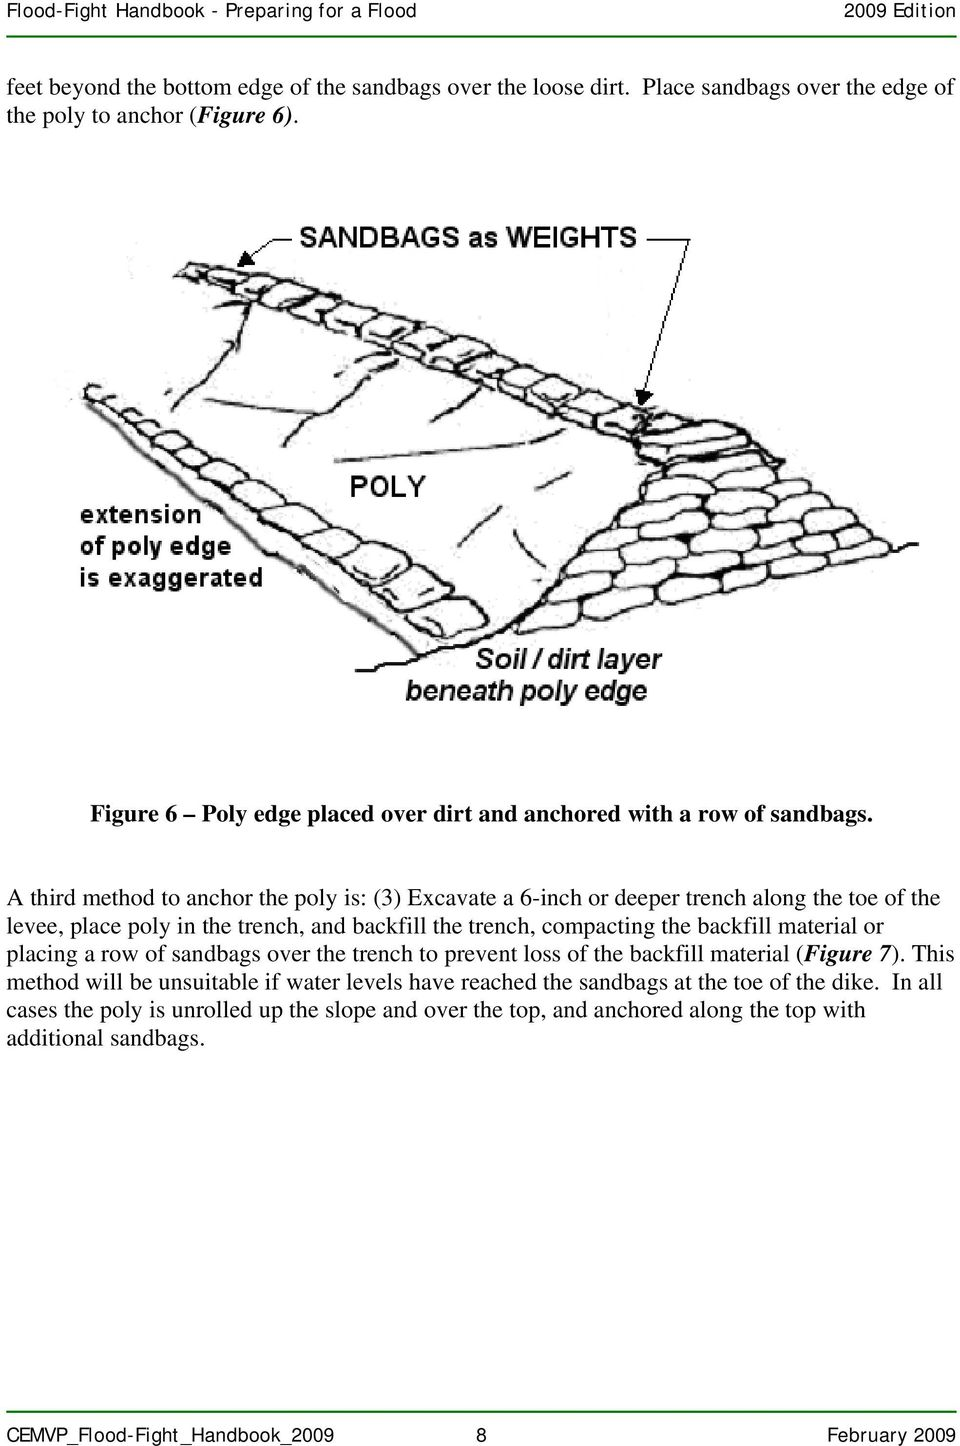 A third method to anchor the poly is: (3) Excavate a 6-inch or deeper trench along the toe of the levee, place poly in the trench, and backfill the trench, compacting the backfill